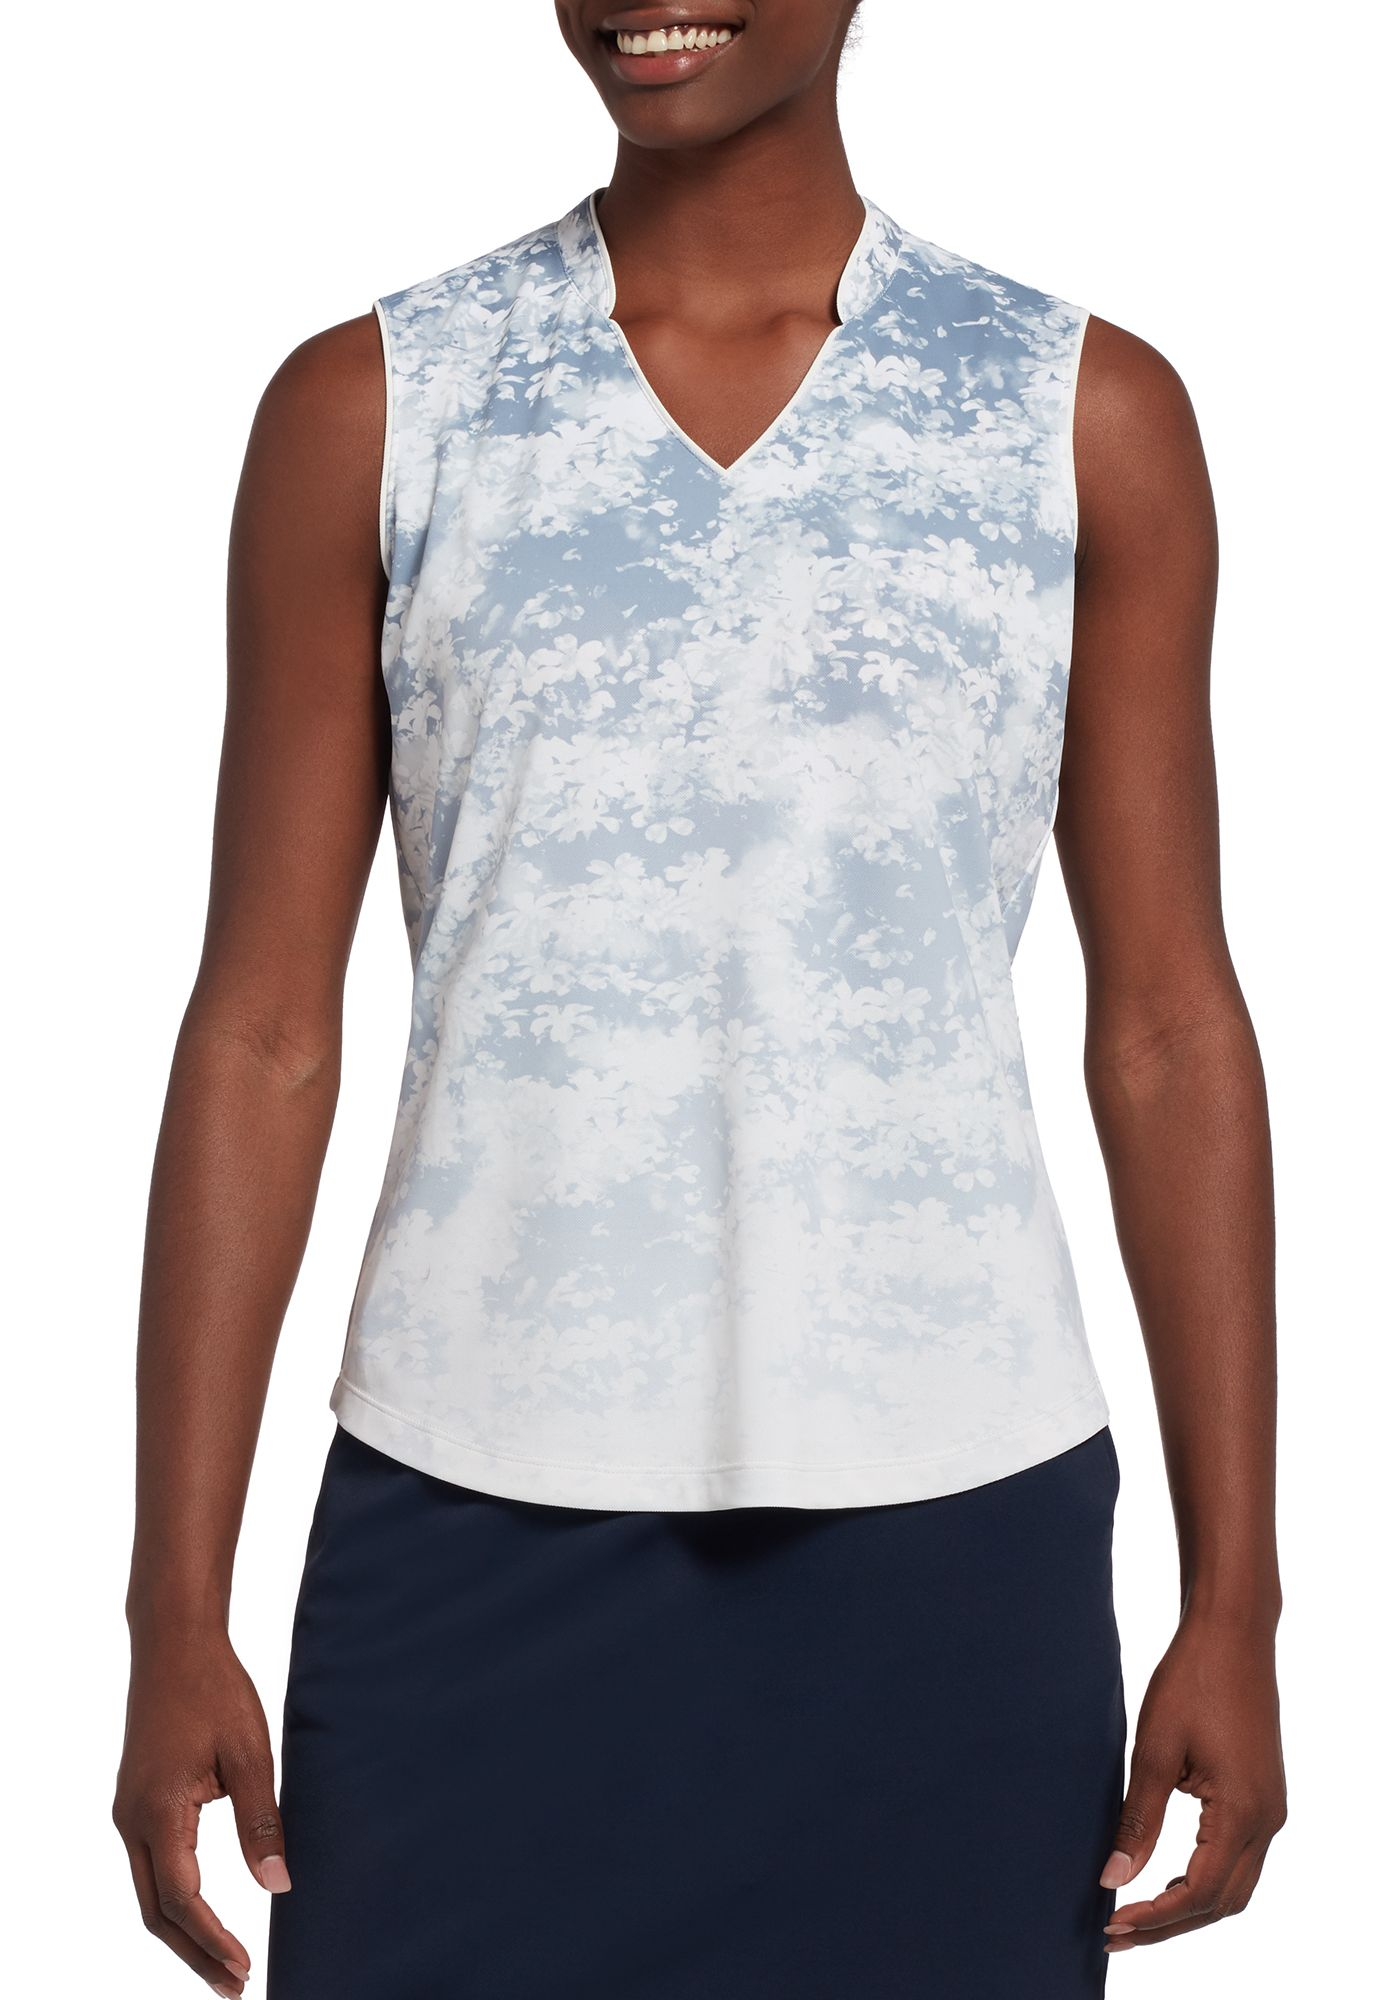 Lady Hagen Women's Ombre Printed Sleeveless Golf Polo